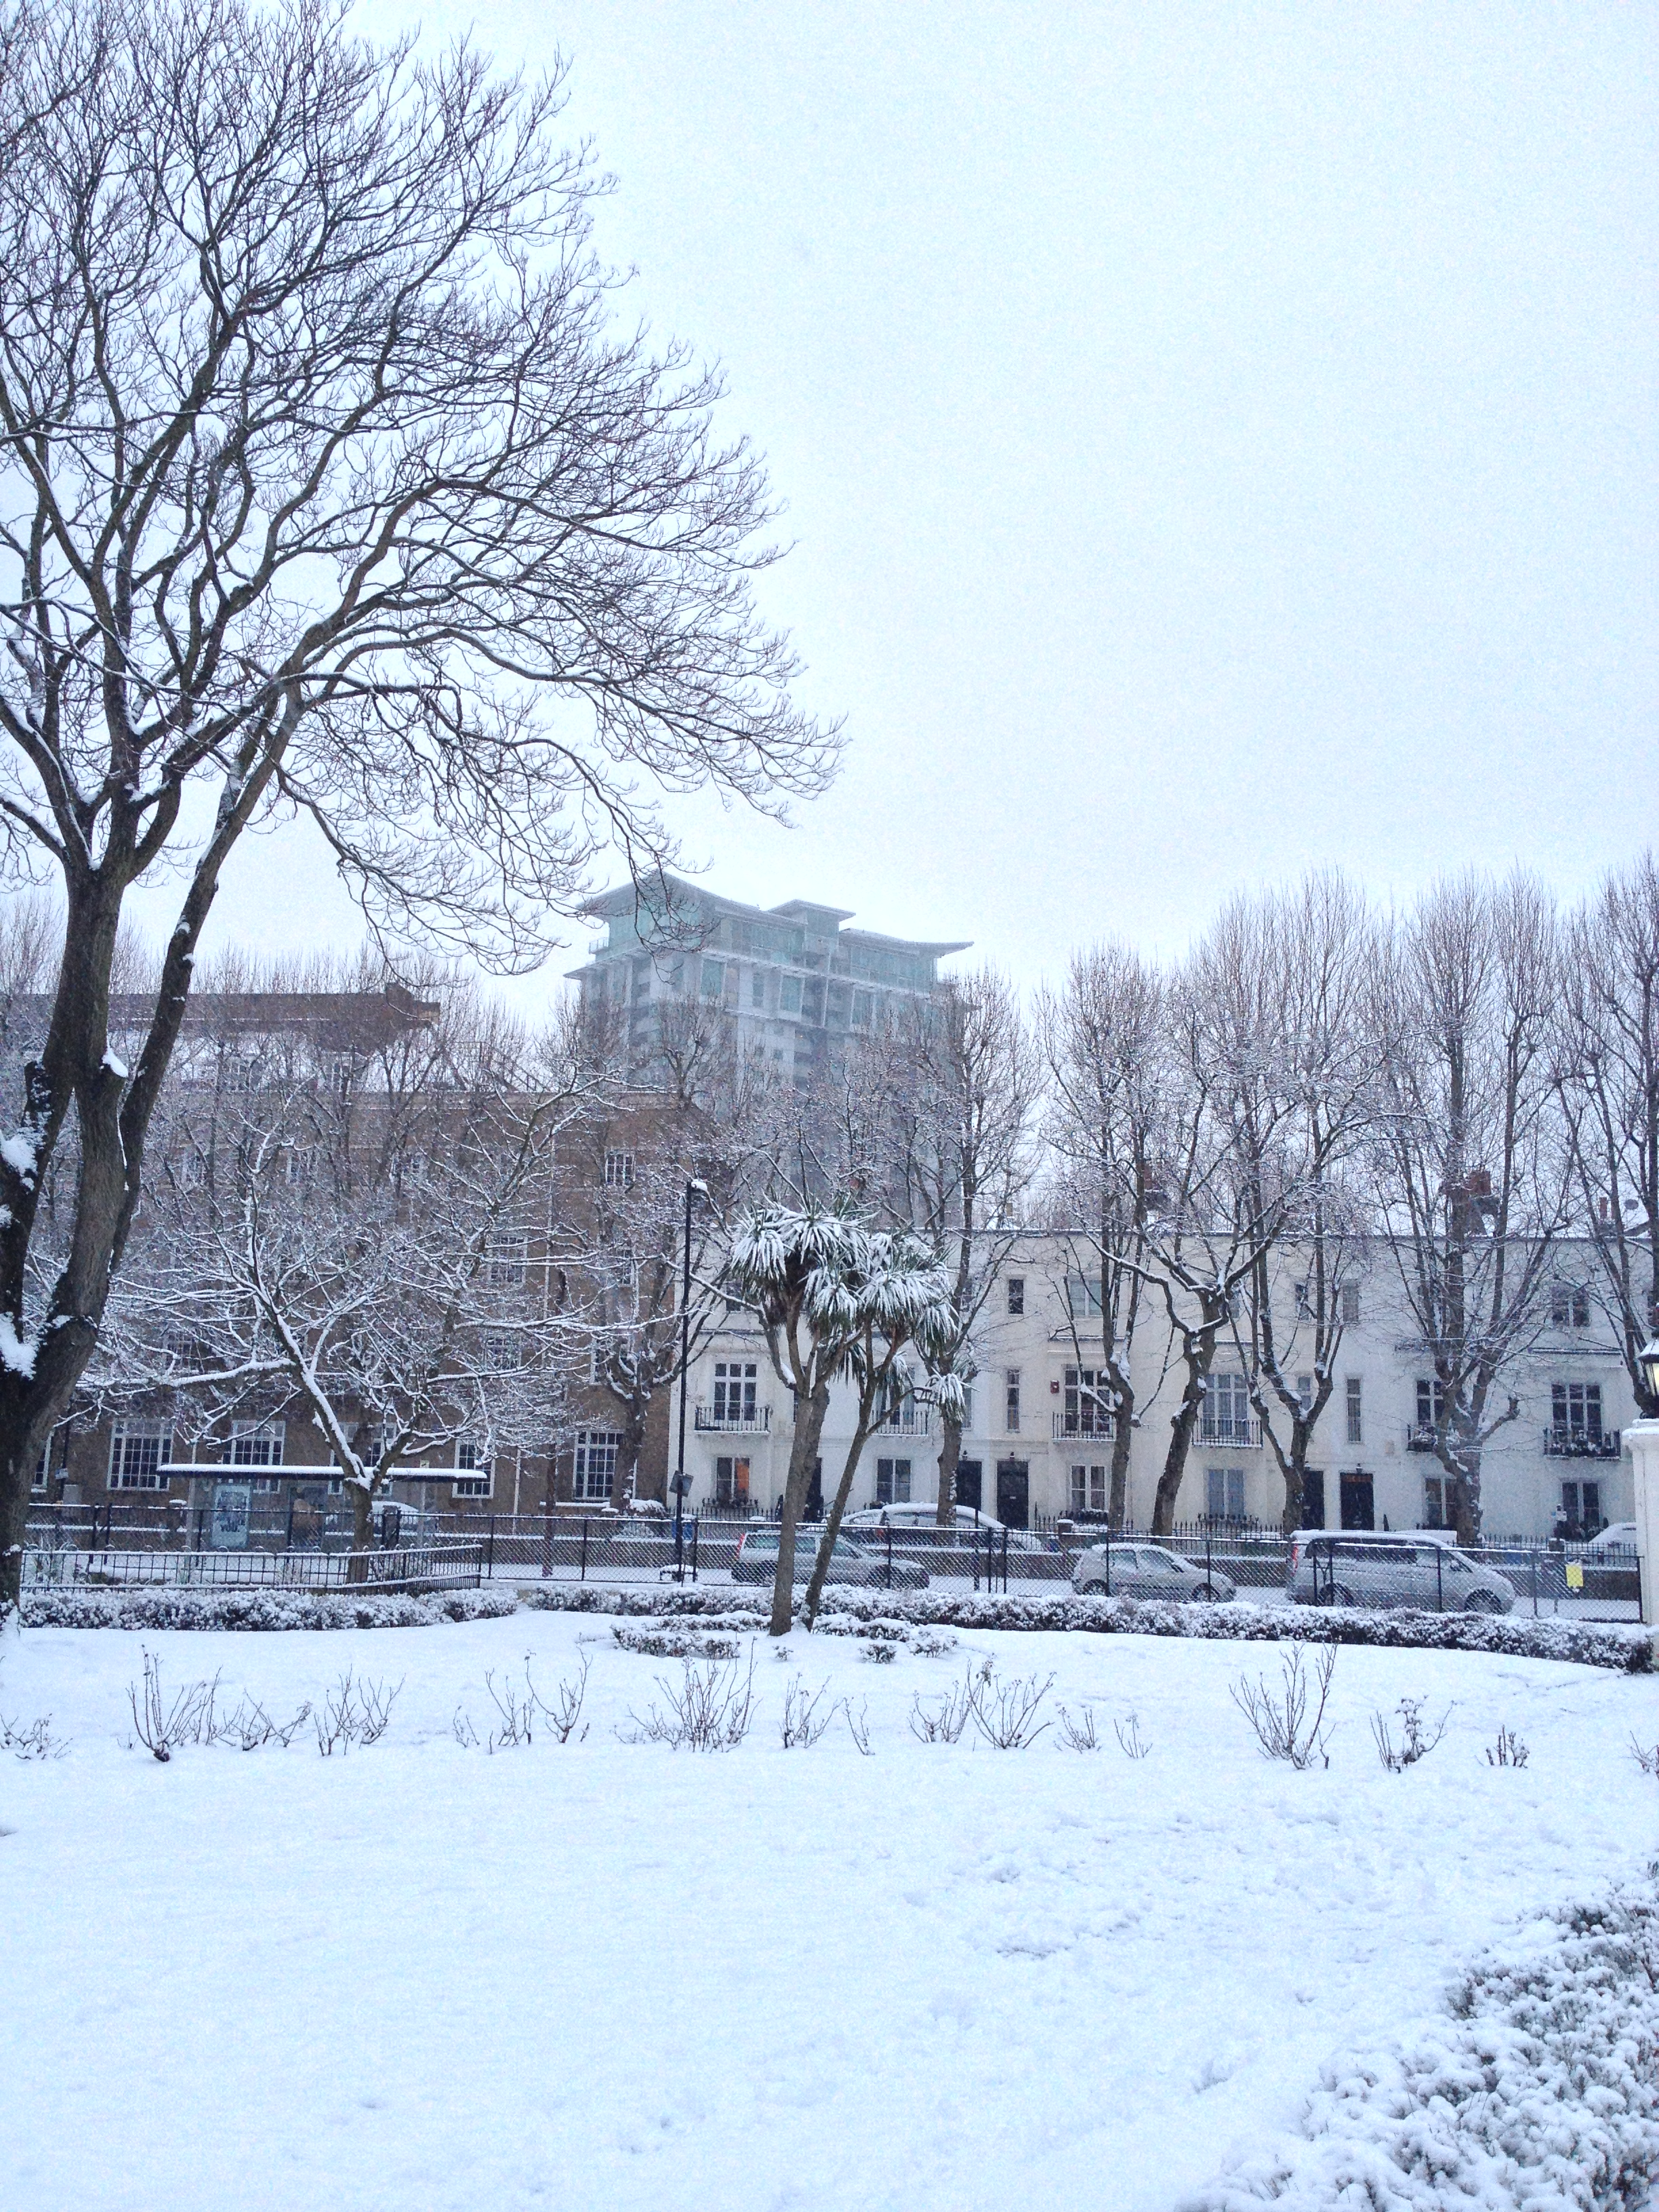 Perspective Building and Lambeth Road from Geraldine Mary Harmsworth Park in snow - kenningtonrunoff.com